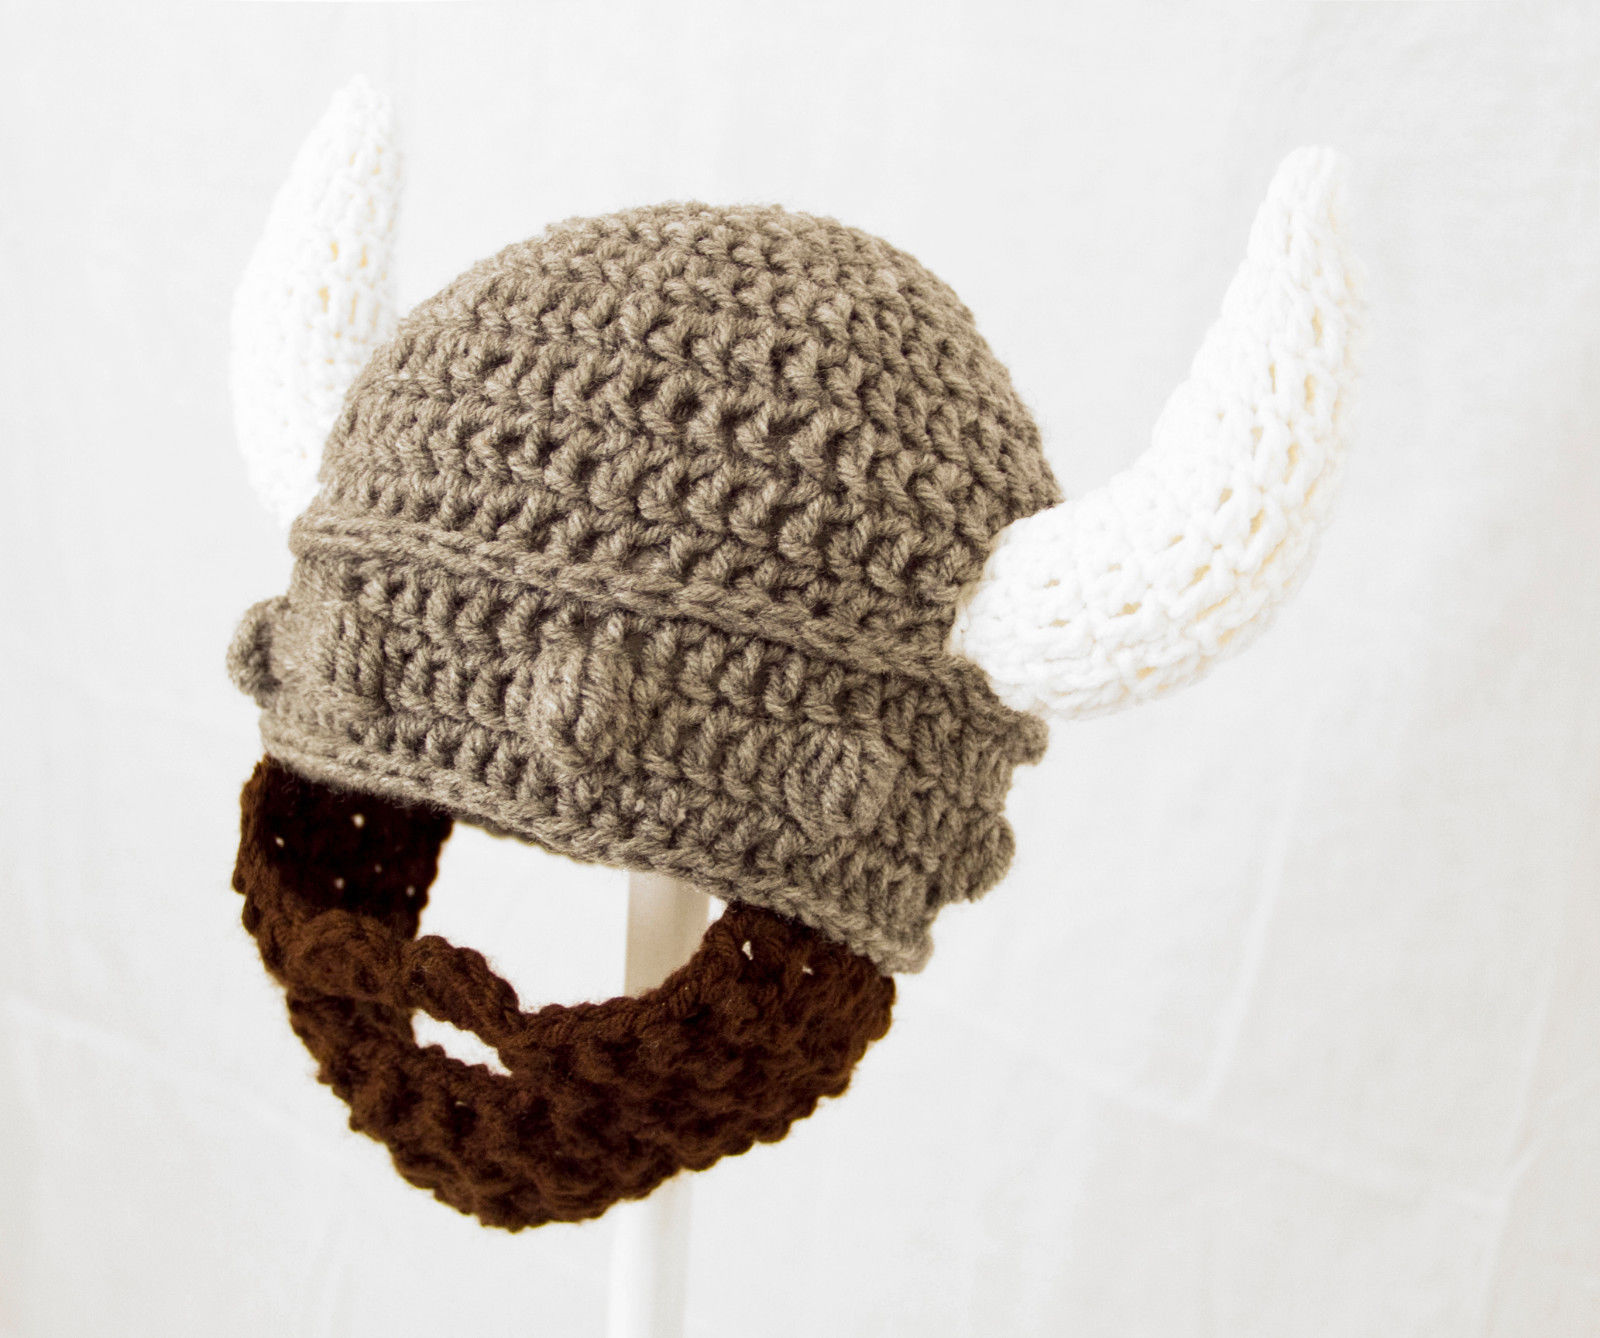 Viking Hat Knitting Pattern Free : Viking Beard Hat, Gray Helmet Knit / Crochet Beard Beanie ...